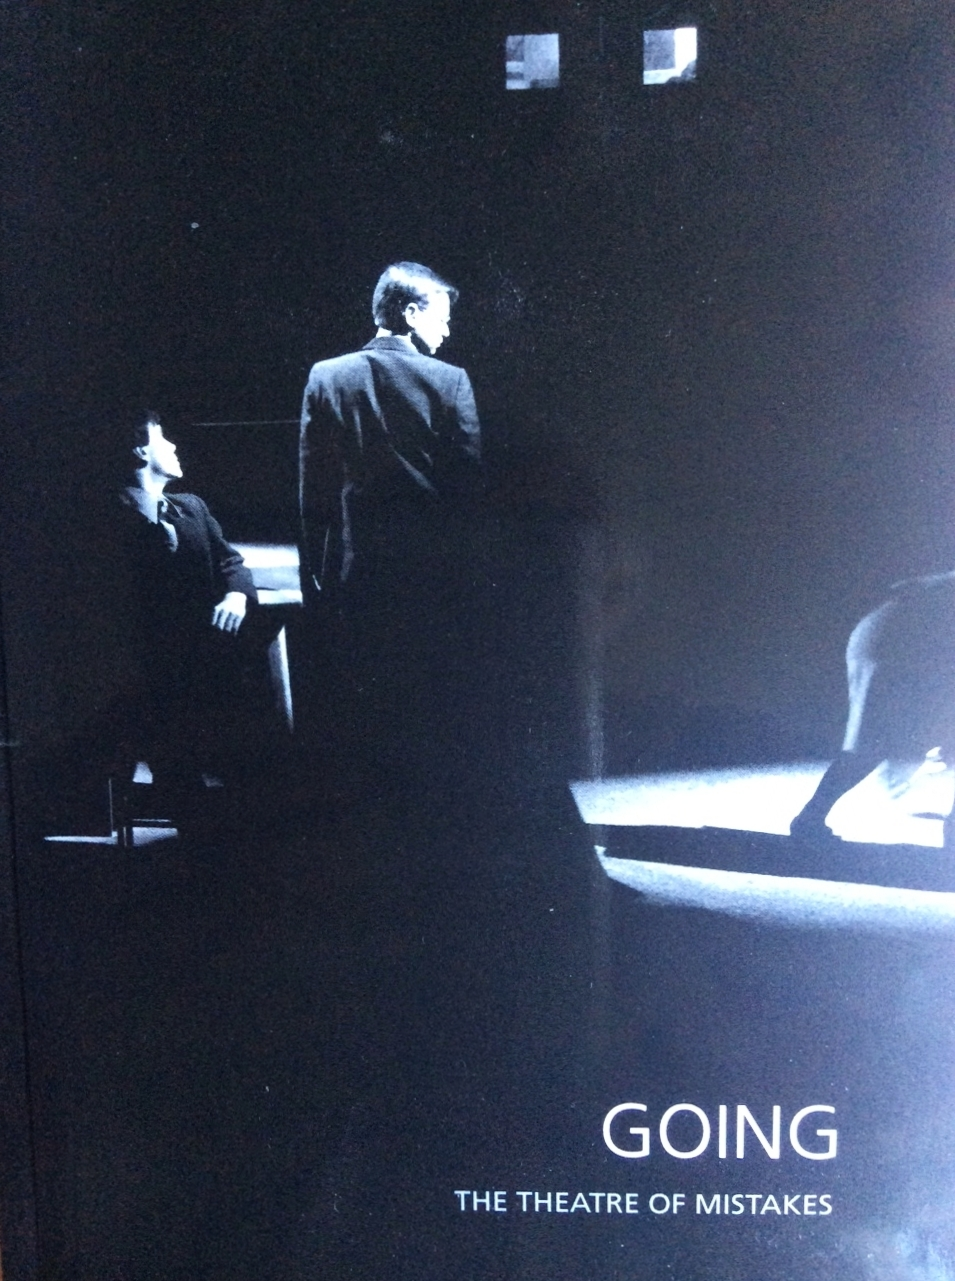 Going, 2nd ed, The Theatre of Mistakes 2017/1977